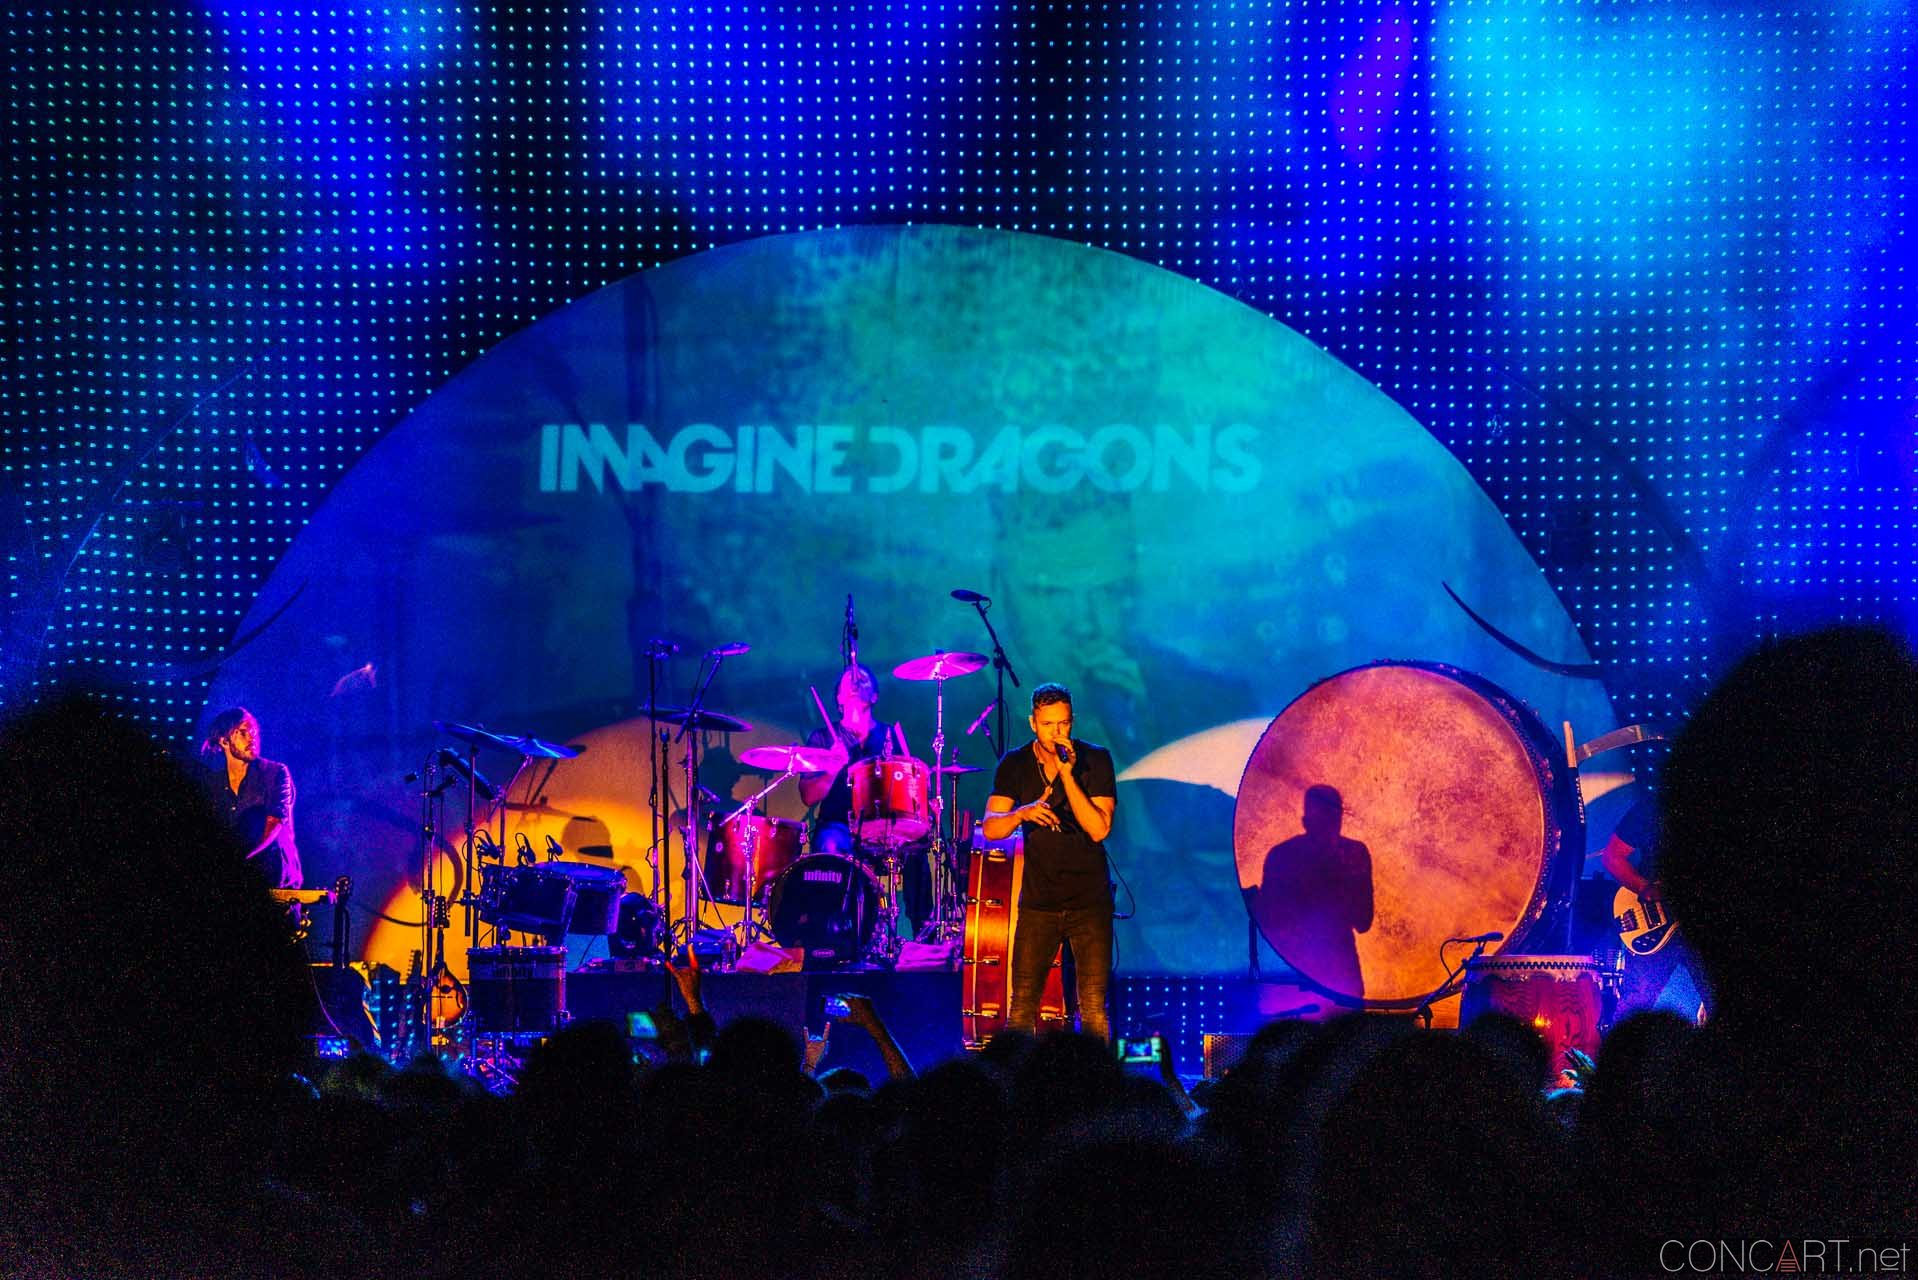 imagine_dragons_live_the_lawn_indianapolis_2013-01